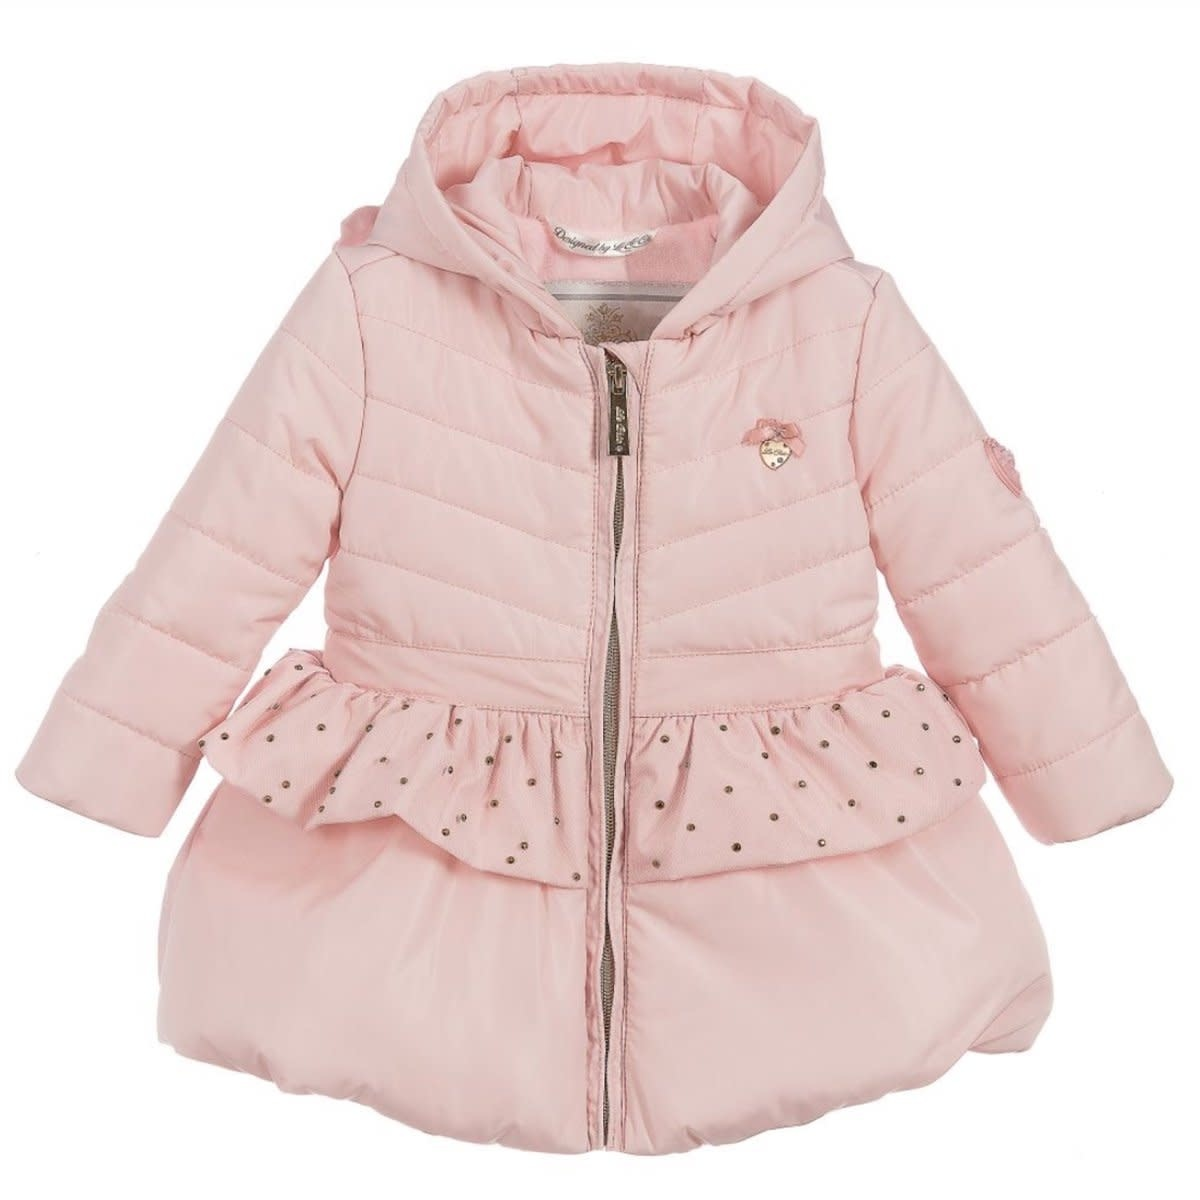 Lechic LeChic C007-7213 Pink Coat with Bow & Net 9-12 Months